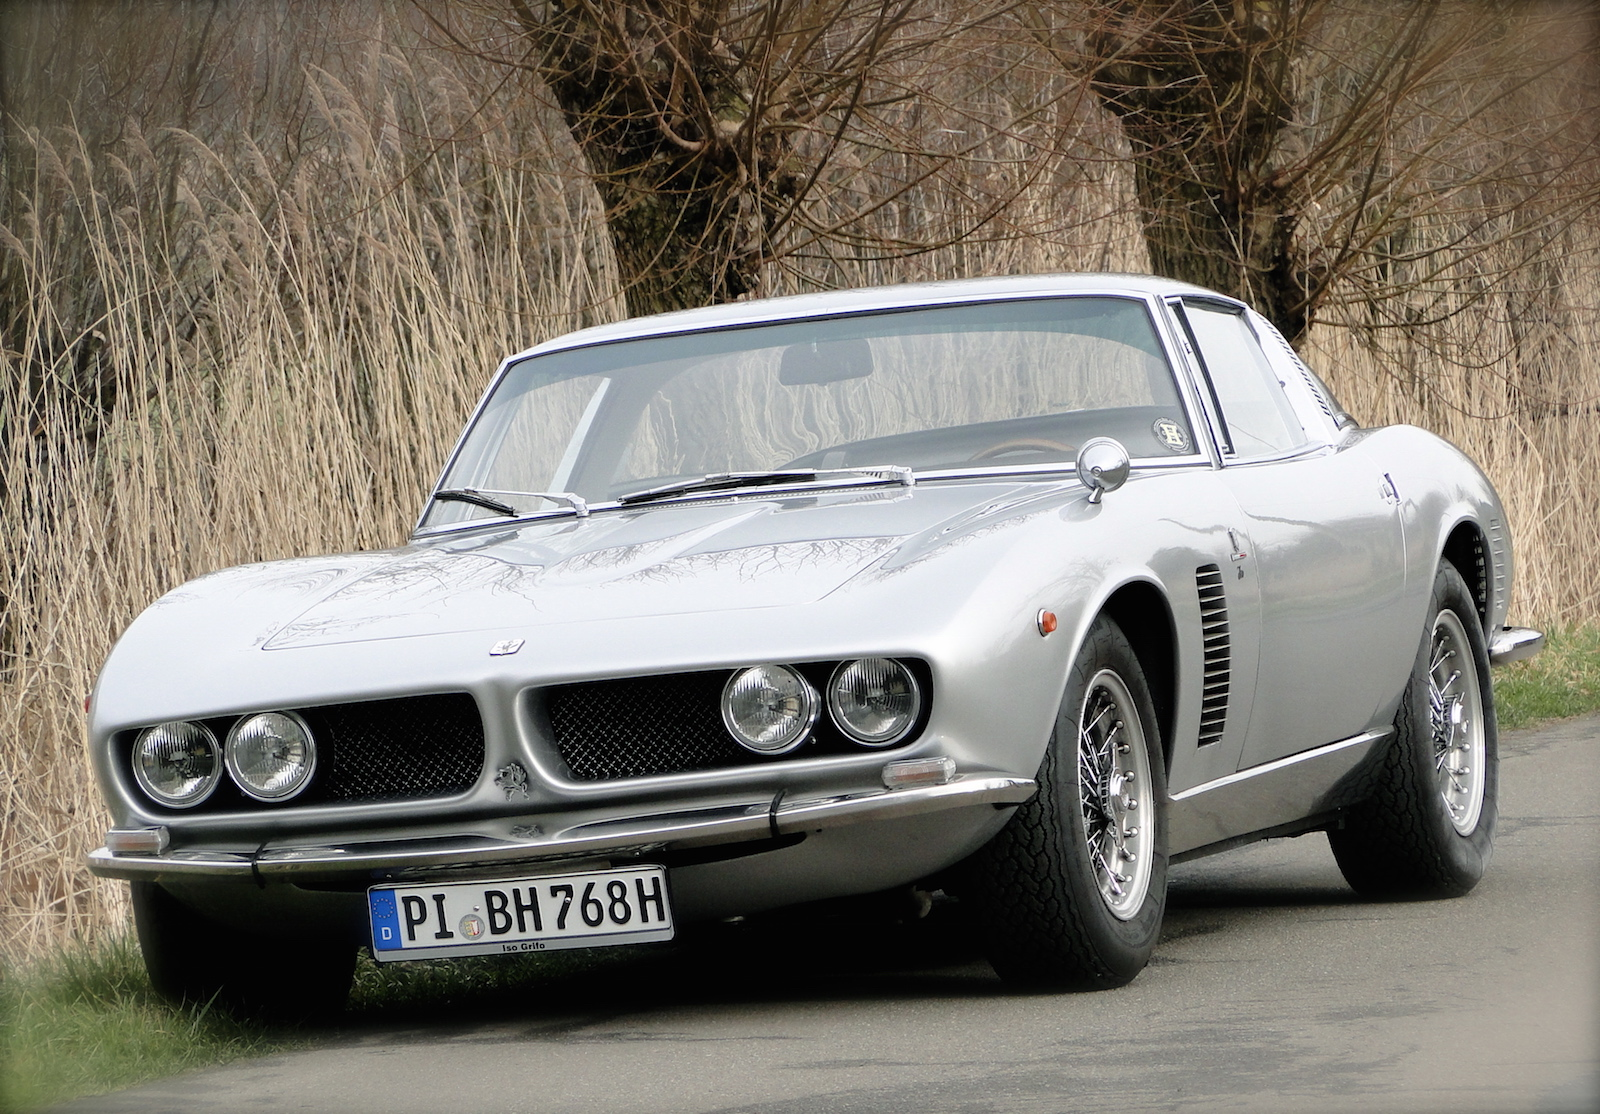 Iso Grifo For Sale - A Series I Beauty